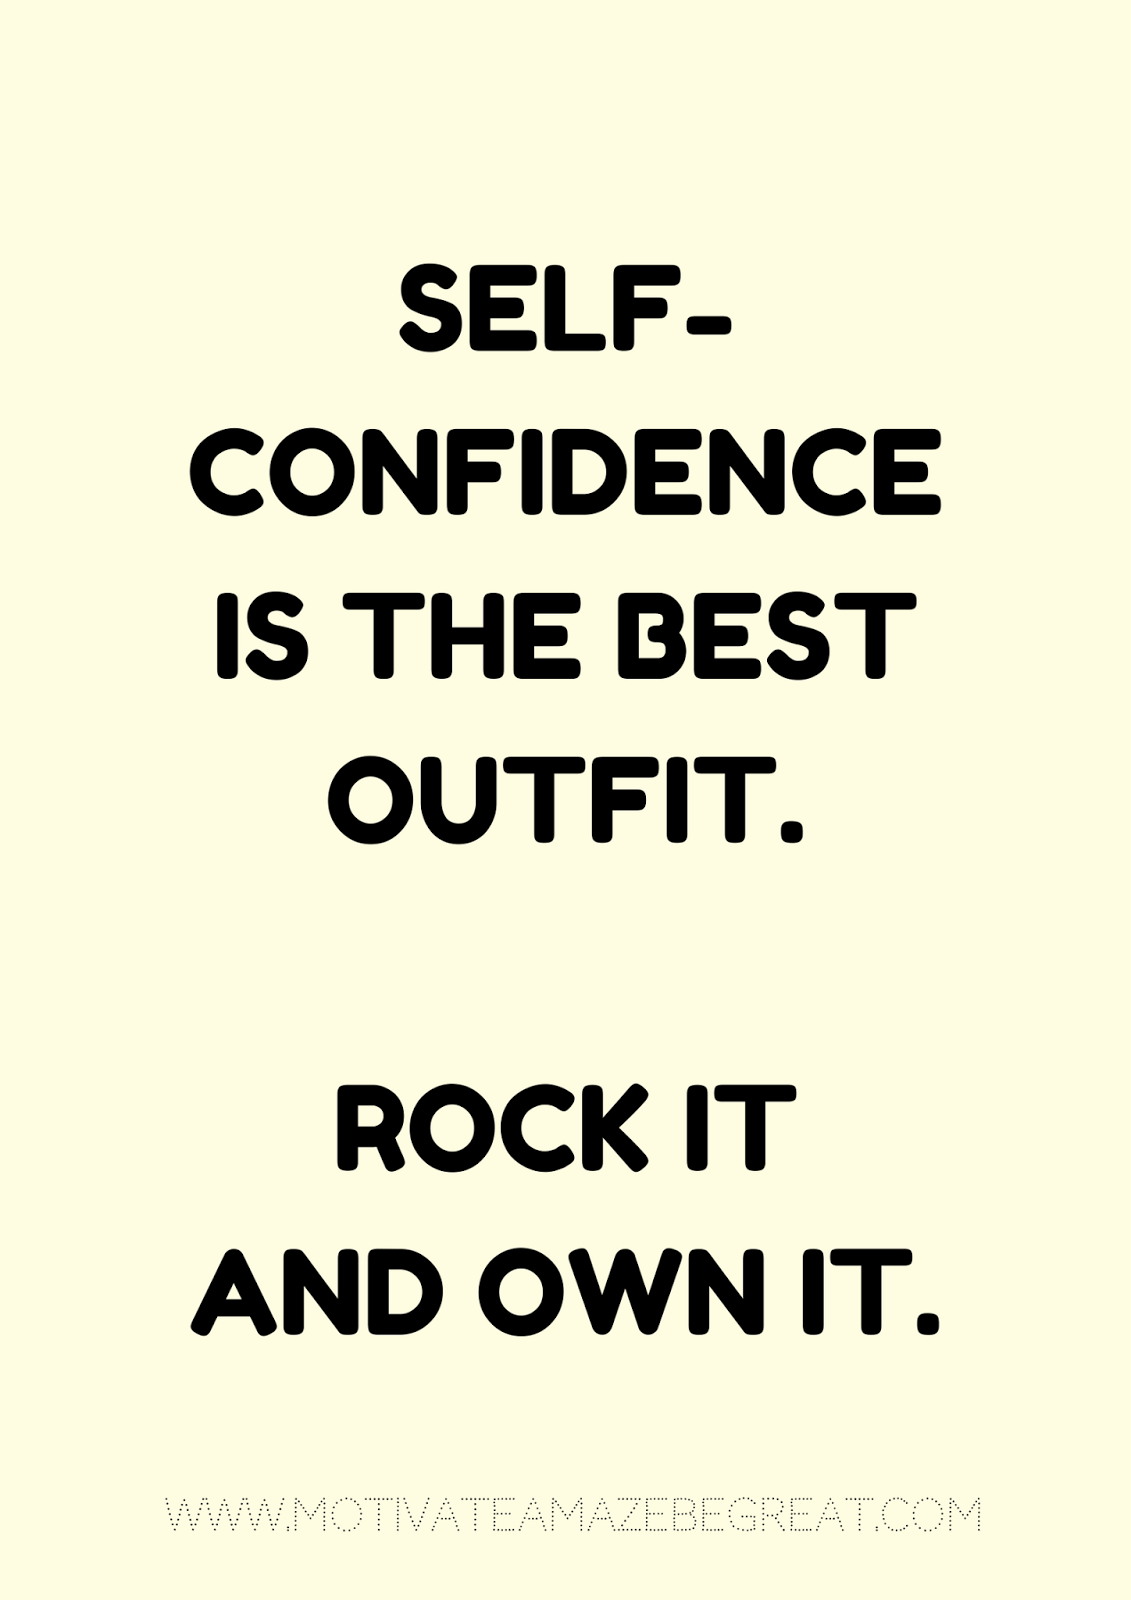 Self Confidence Quotes 27 Self Motivation Quotes And Posters For Success  Motivate Amaze